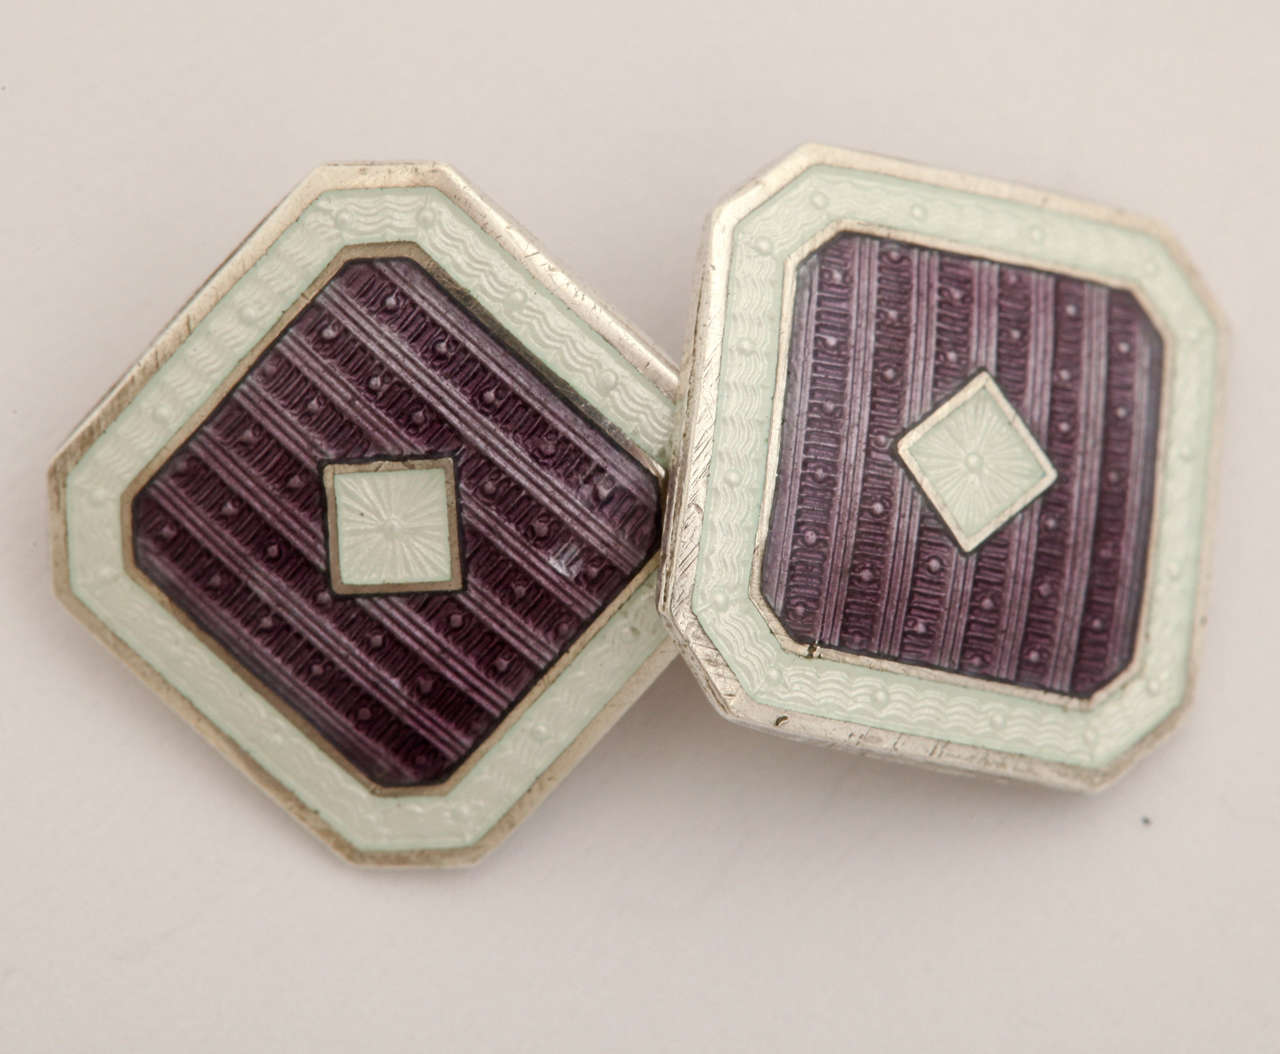 1920s-1930s Art Deco Guilloche Enamel Sterling Silver Cufflinks In Excellent Condition For Sale In New York, NY